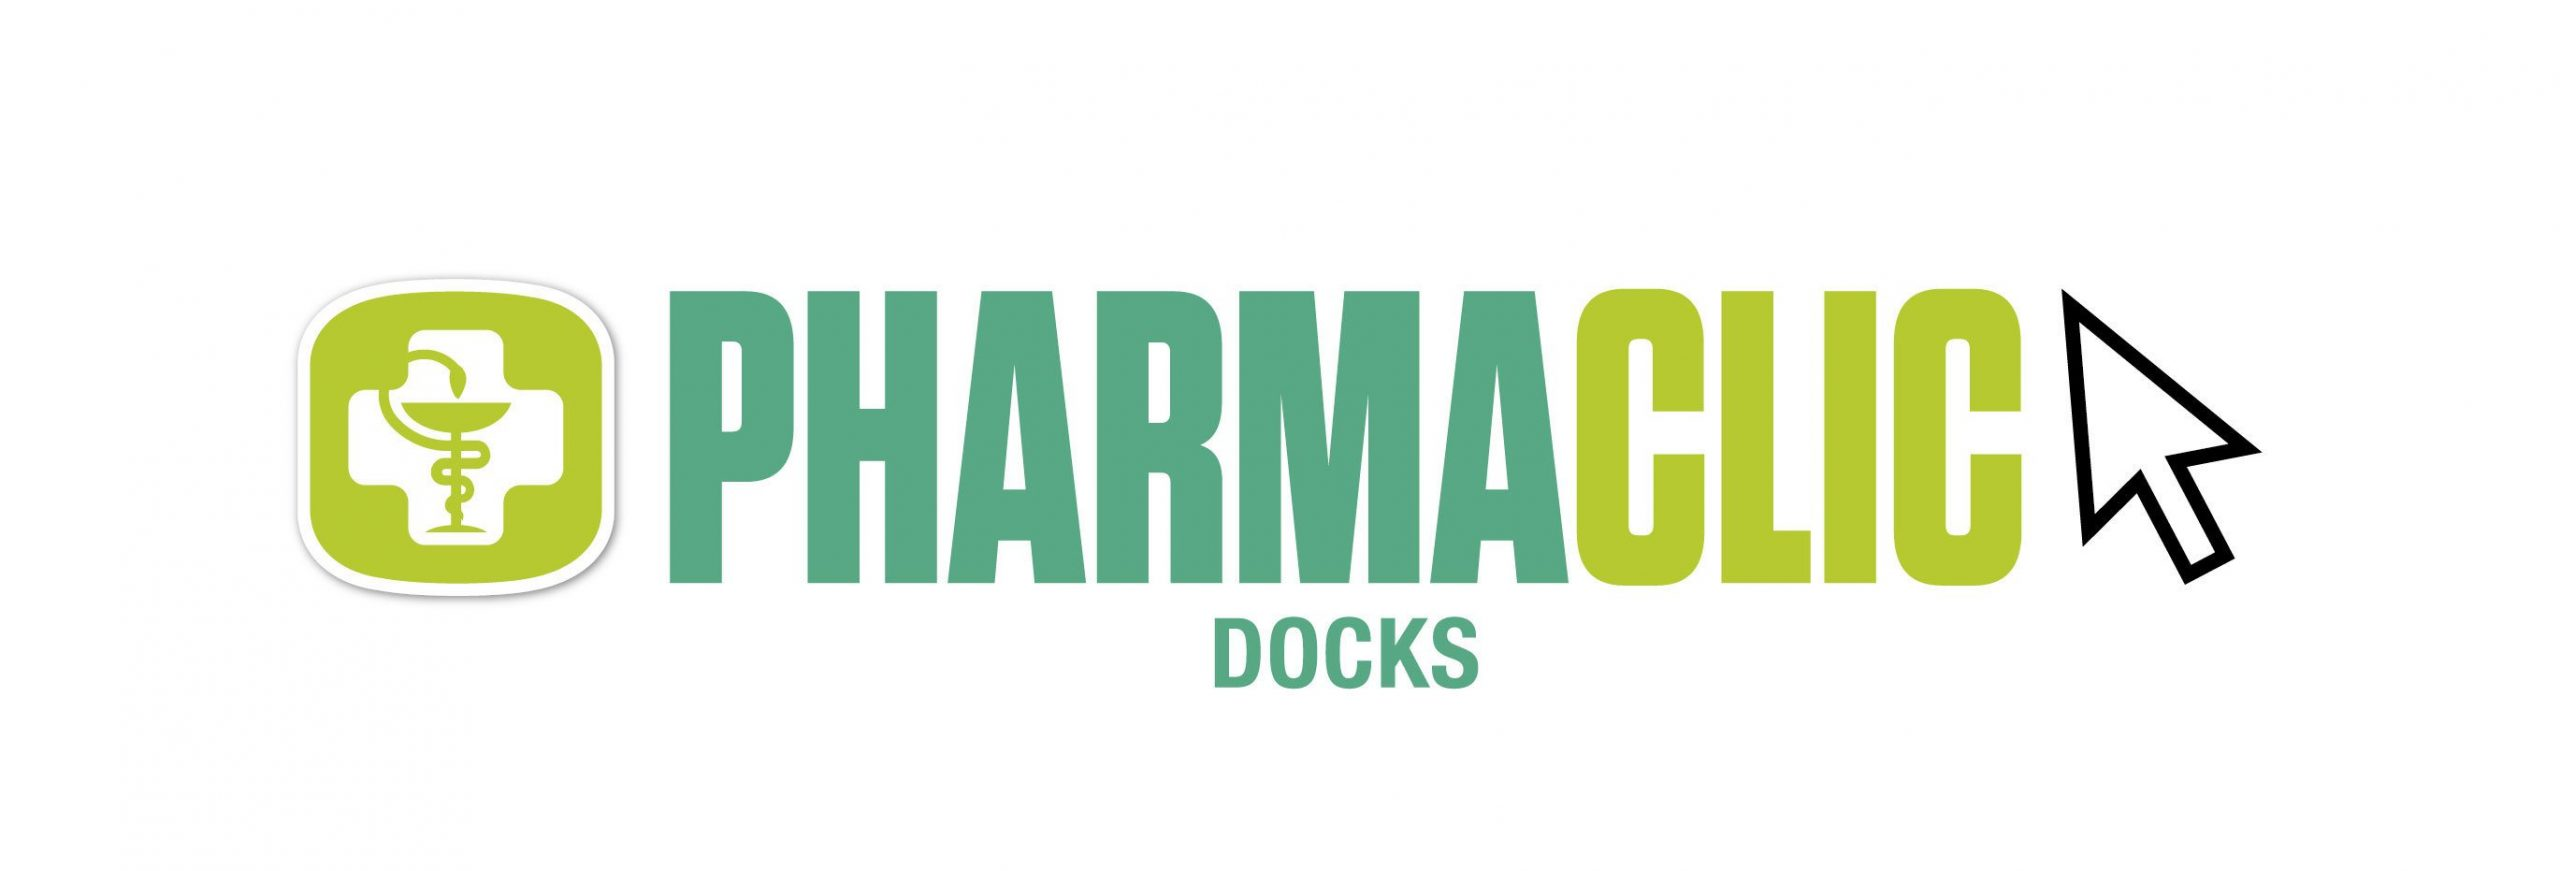 PharmaClic Docks